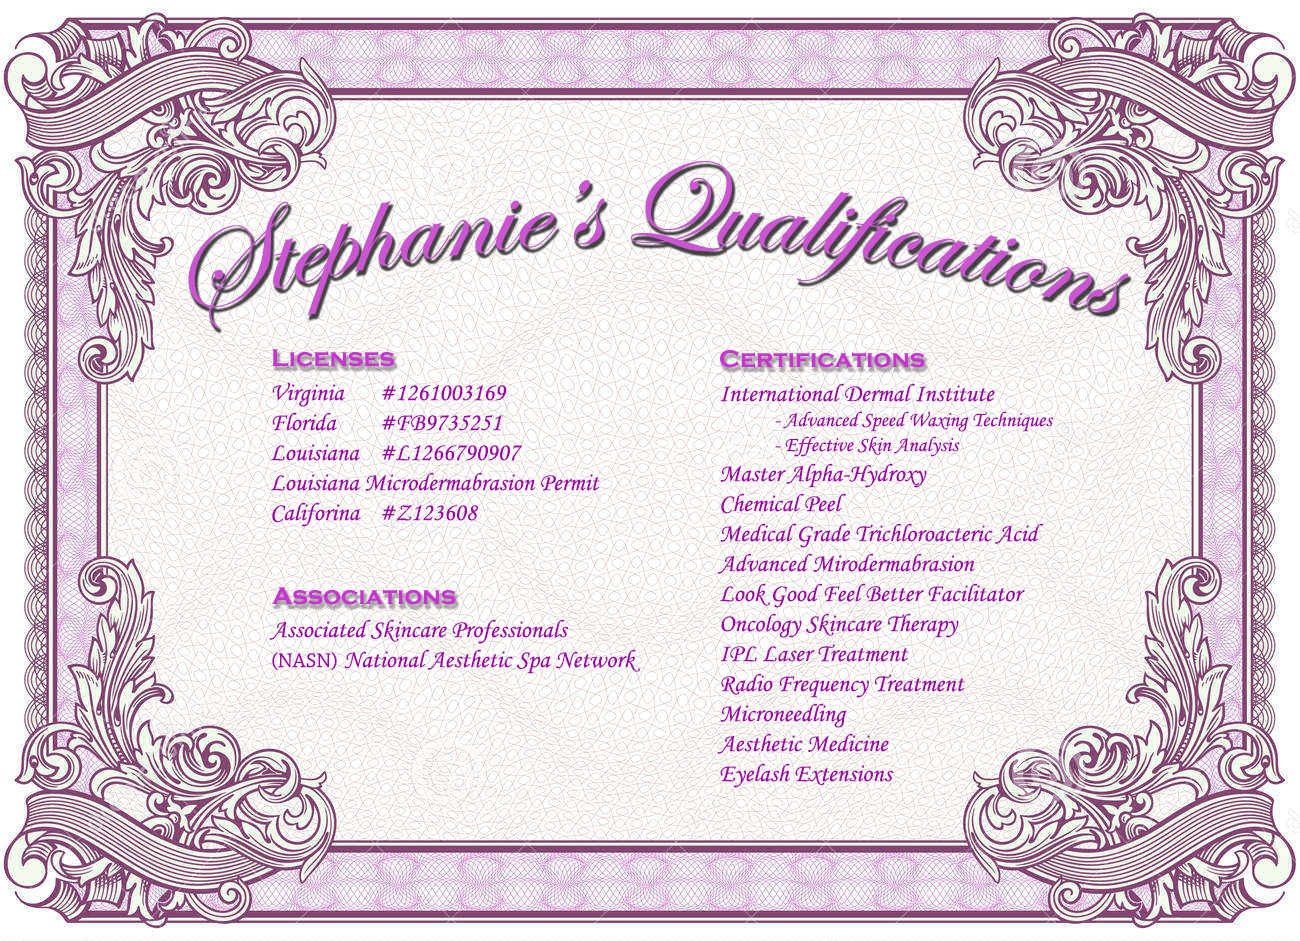 Stephanie Qualifications